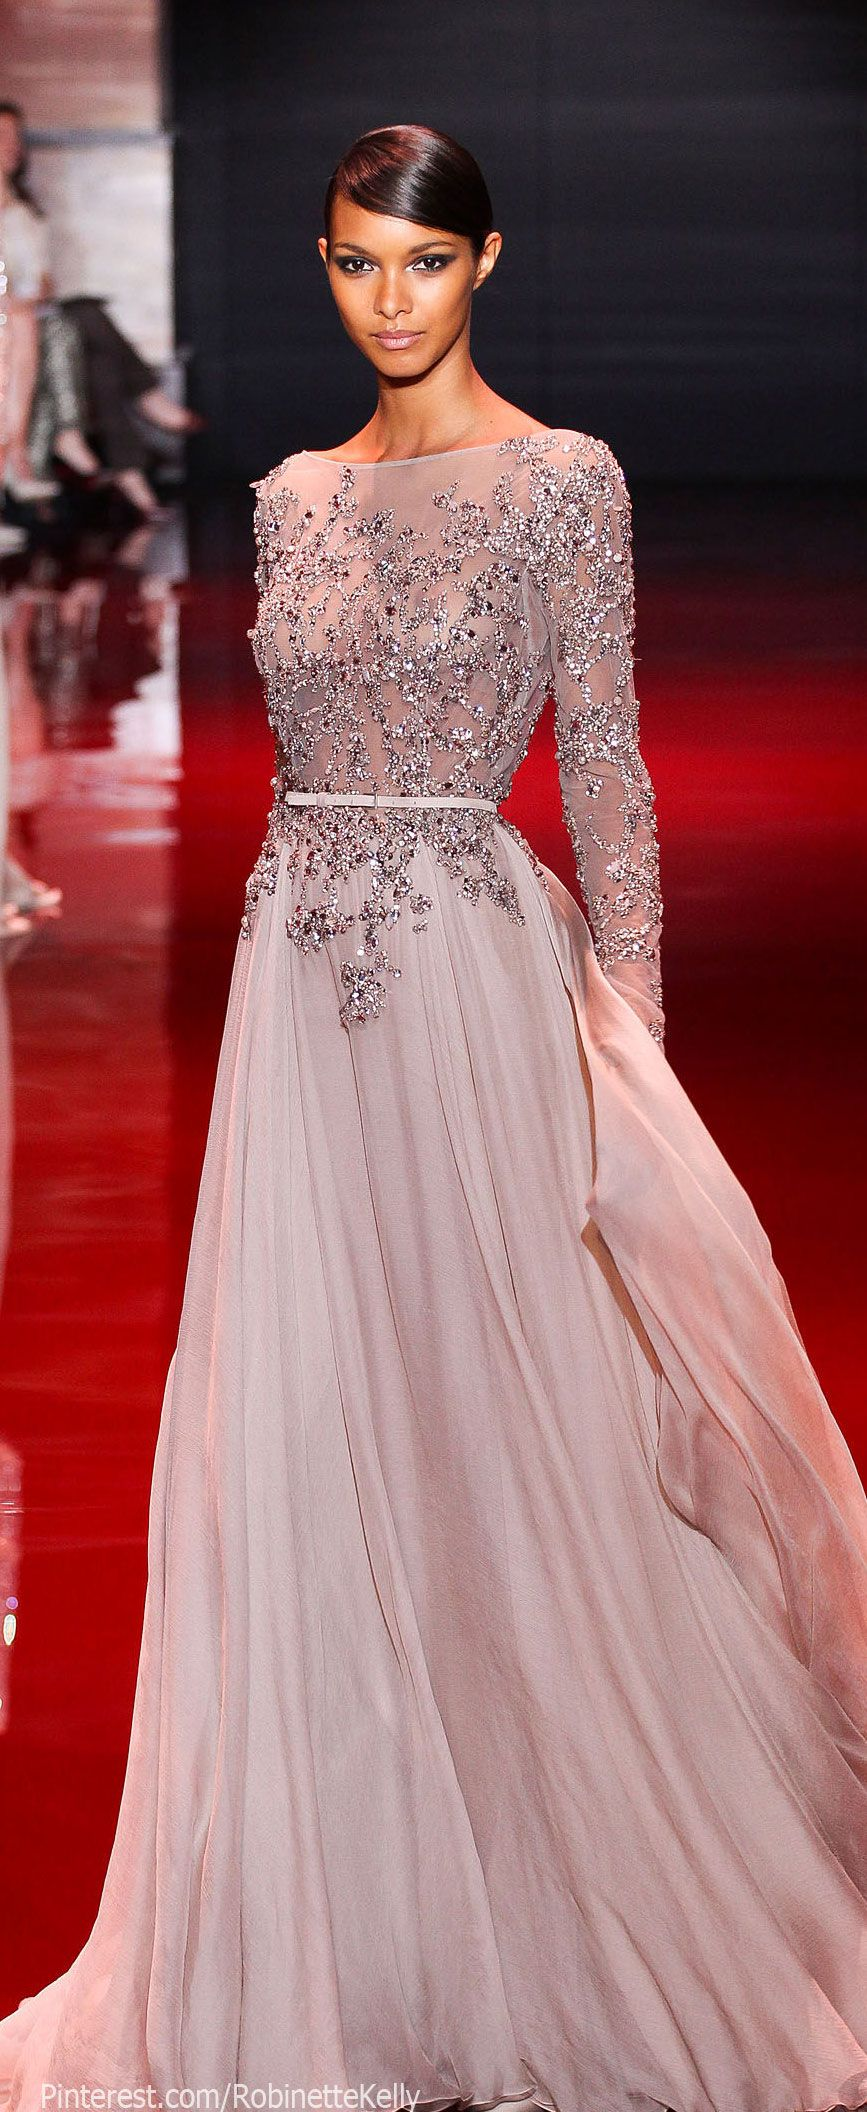 Elie Saab Haute Couture 2015. ' Obsessed With